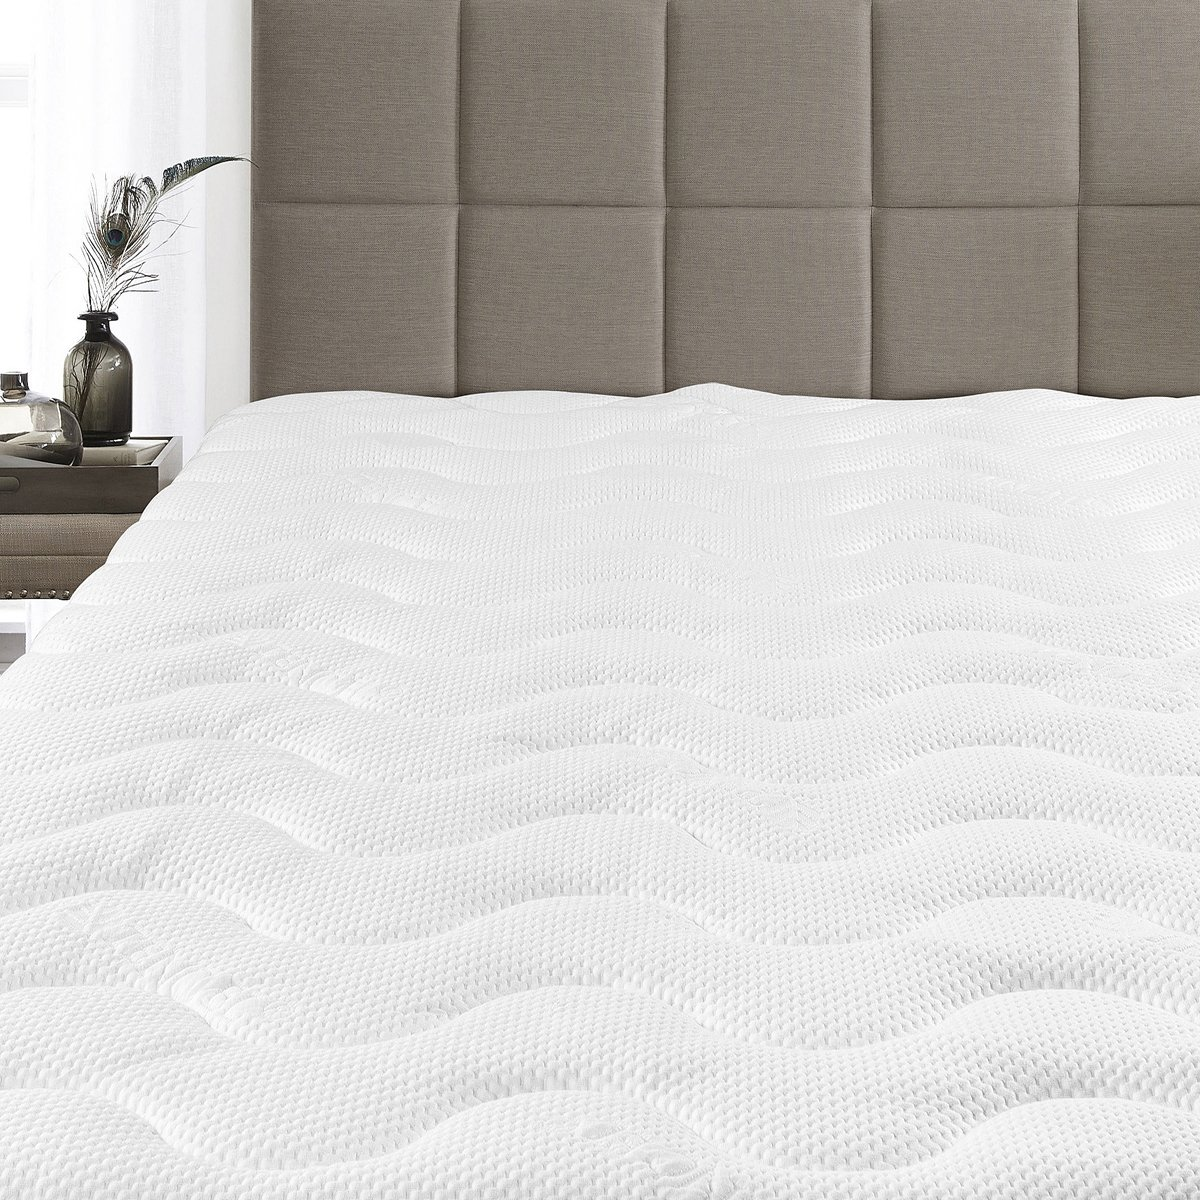 Waterproof Lyocell from Eucalyptus Tencel Jacqurad Blend Fitted Topper, Cal King Mattress Pad by Royal Hotel